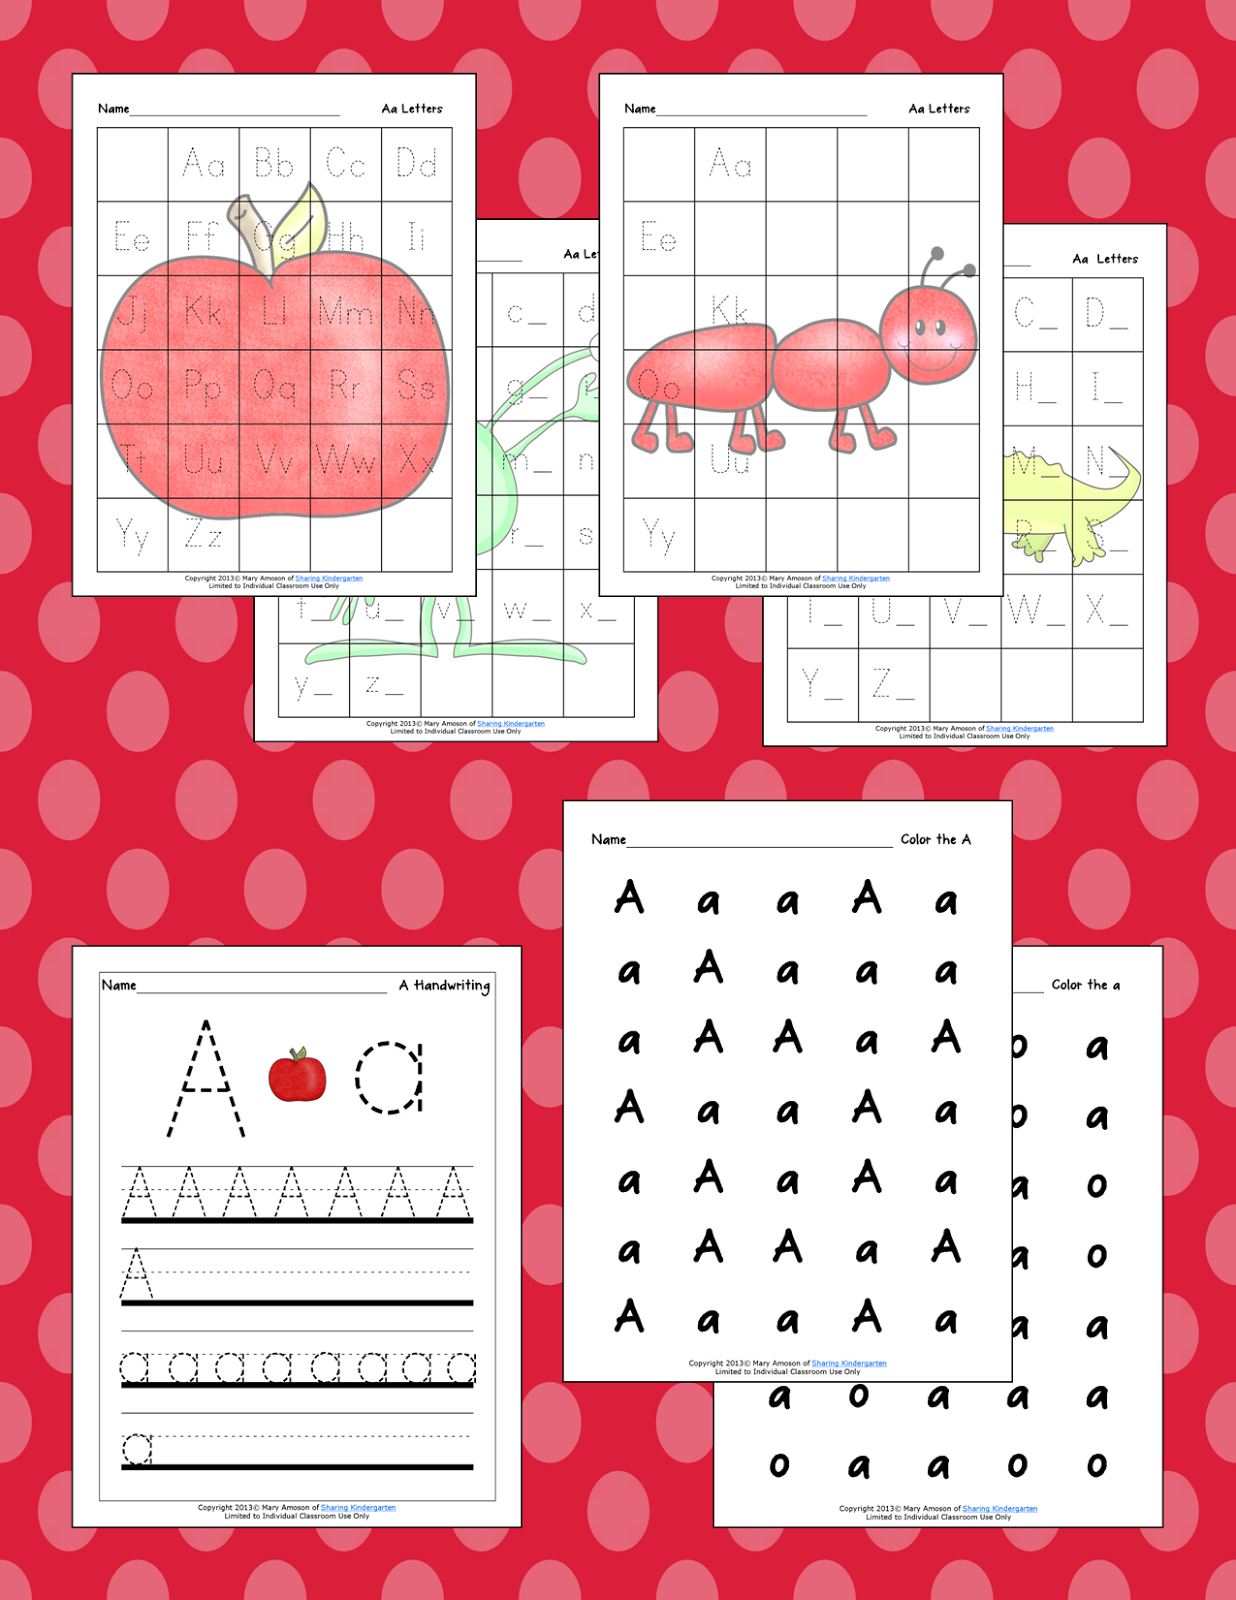 http://www.teacherspayteachers.com/Product/Aa-Activities-721079